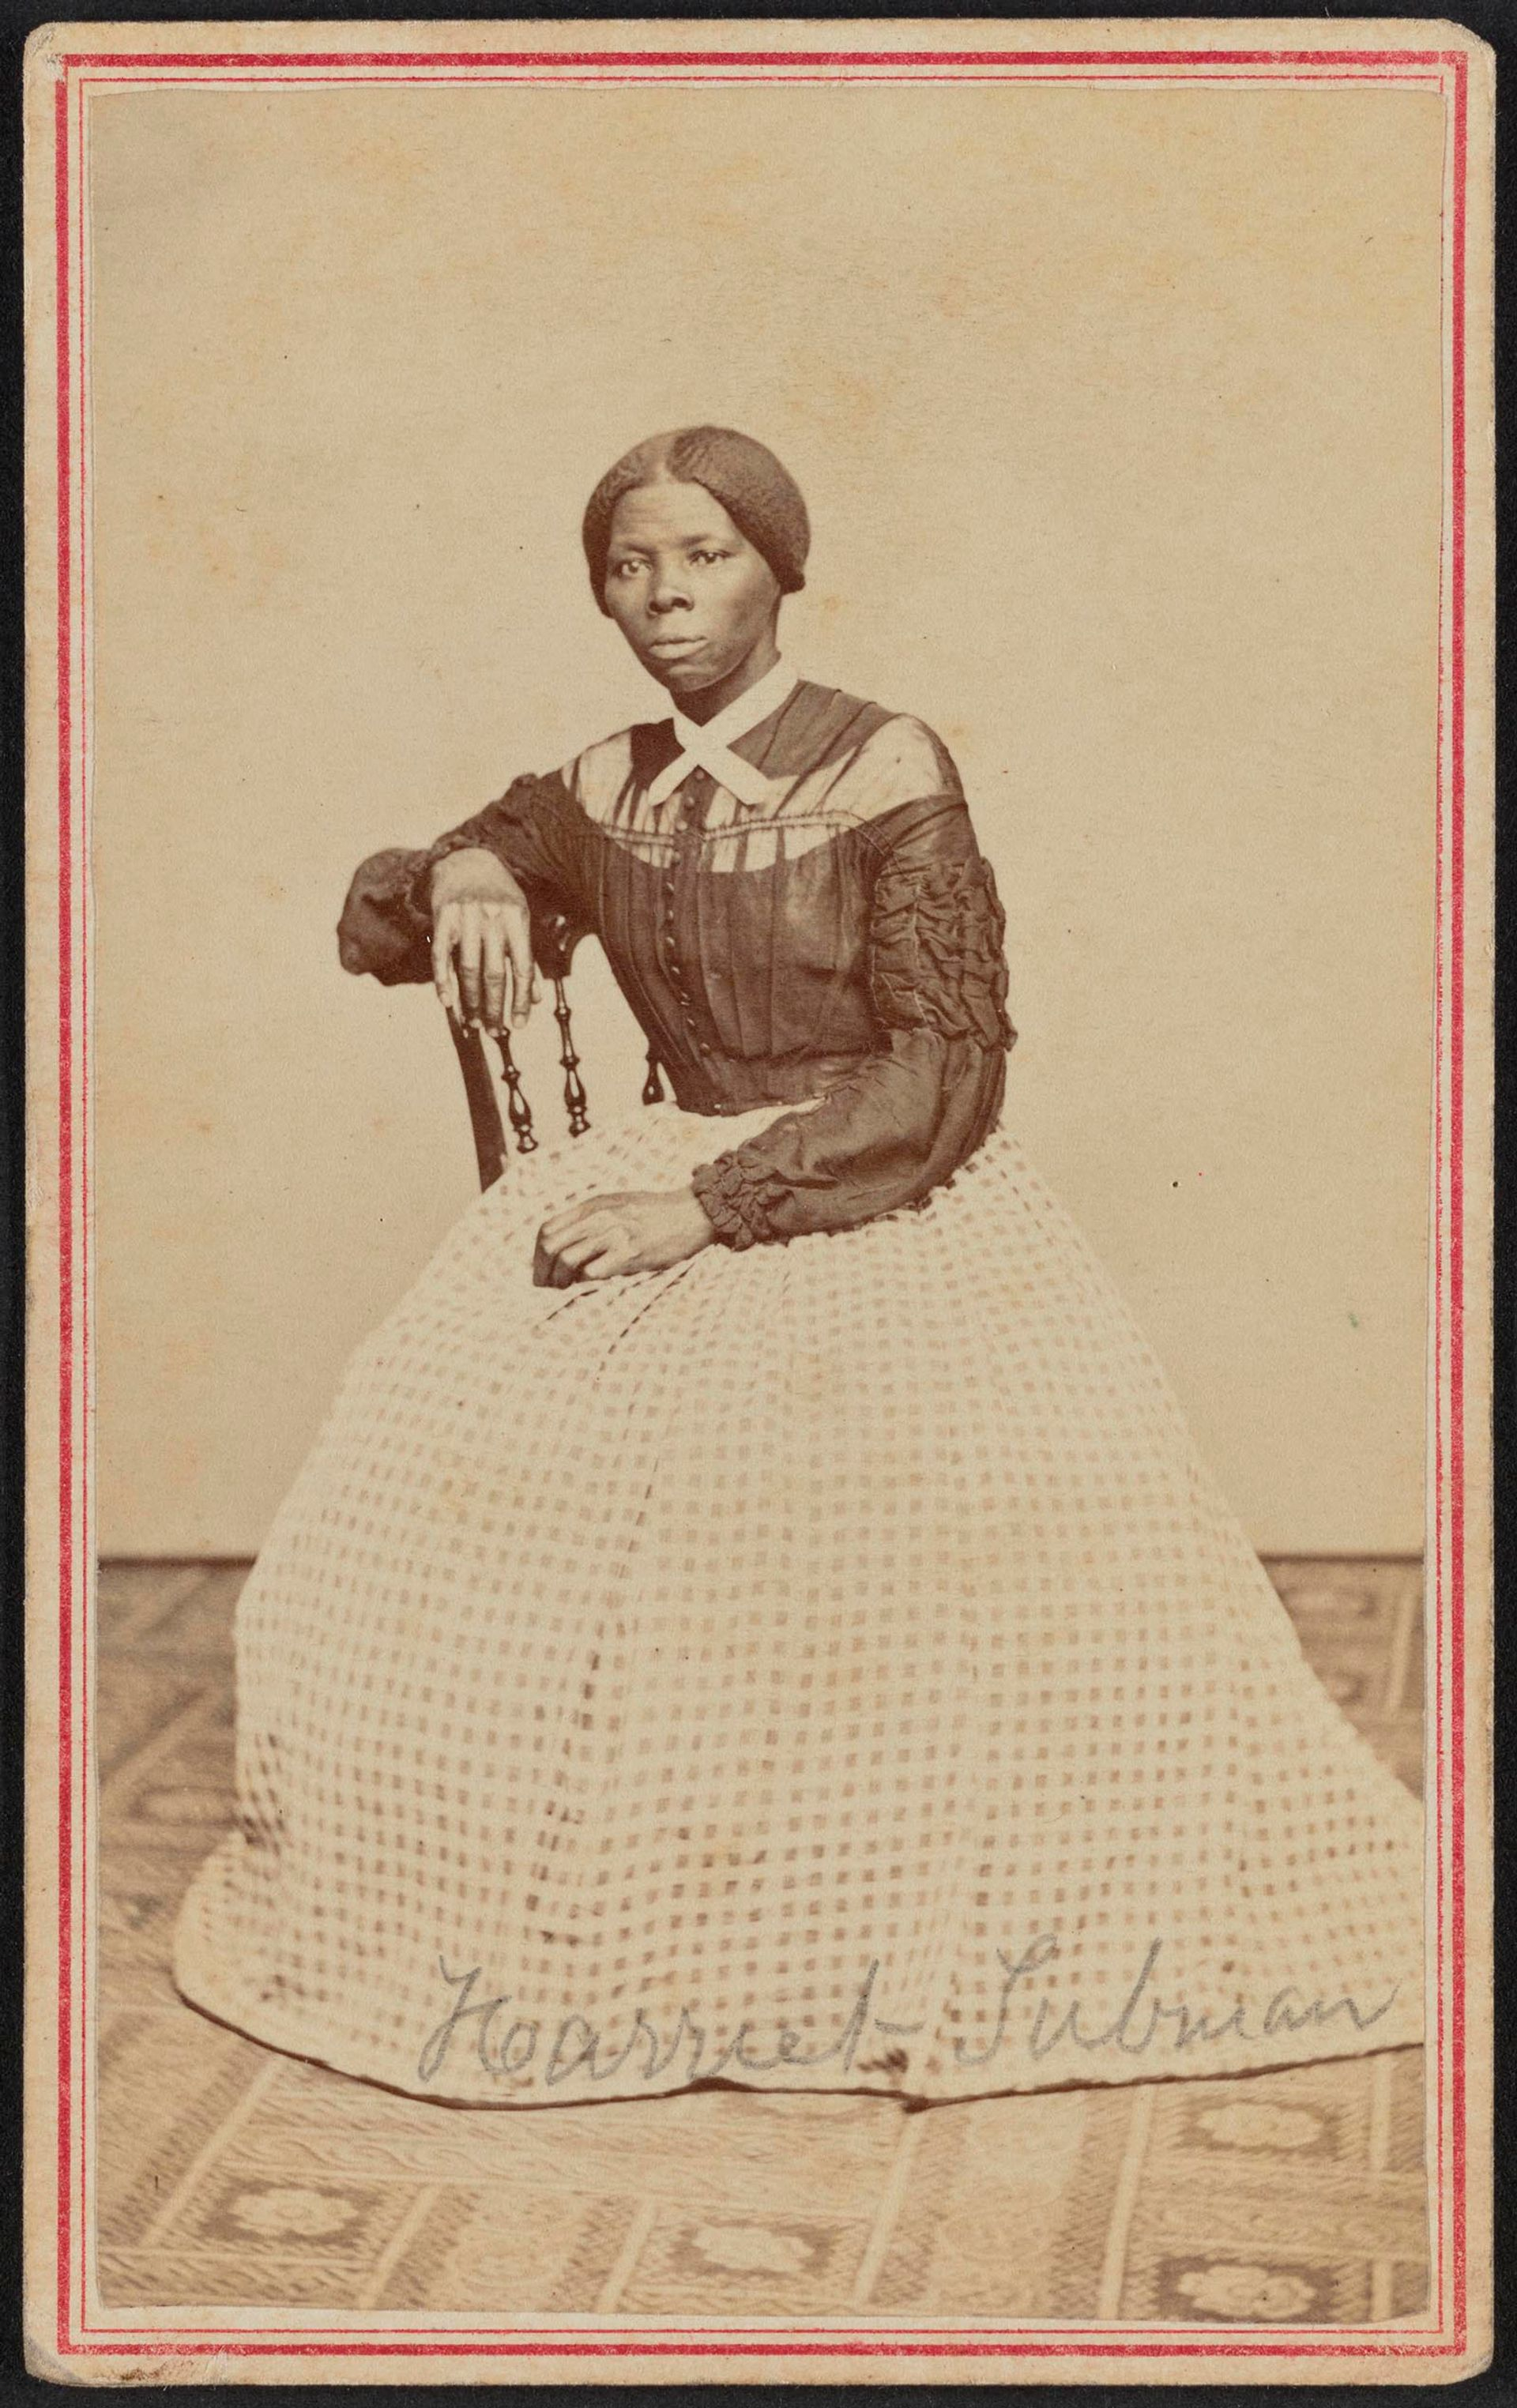 Harriet Tubman in a rediscovered carte de visite photograph (around 1868-69) Collection of the Smithsonian National Museum of African American History and Culture shared with the Library of Congress